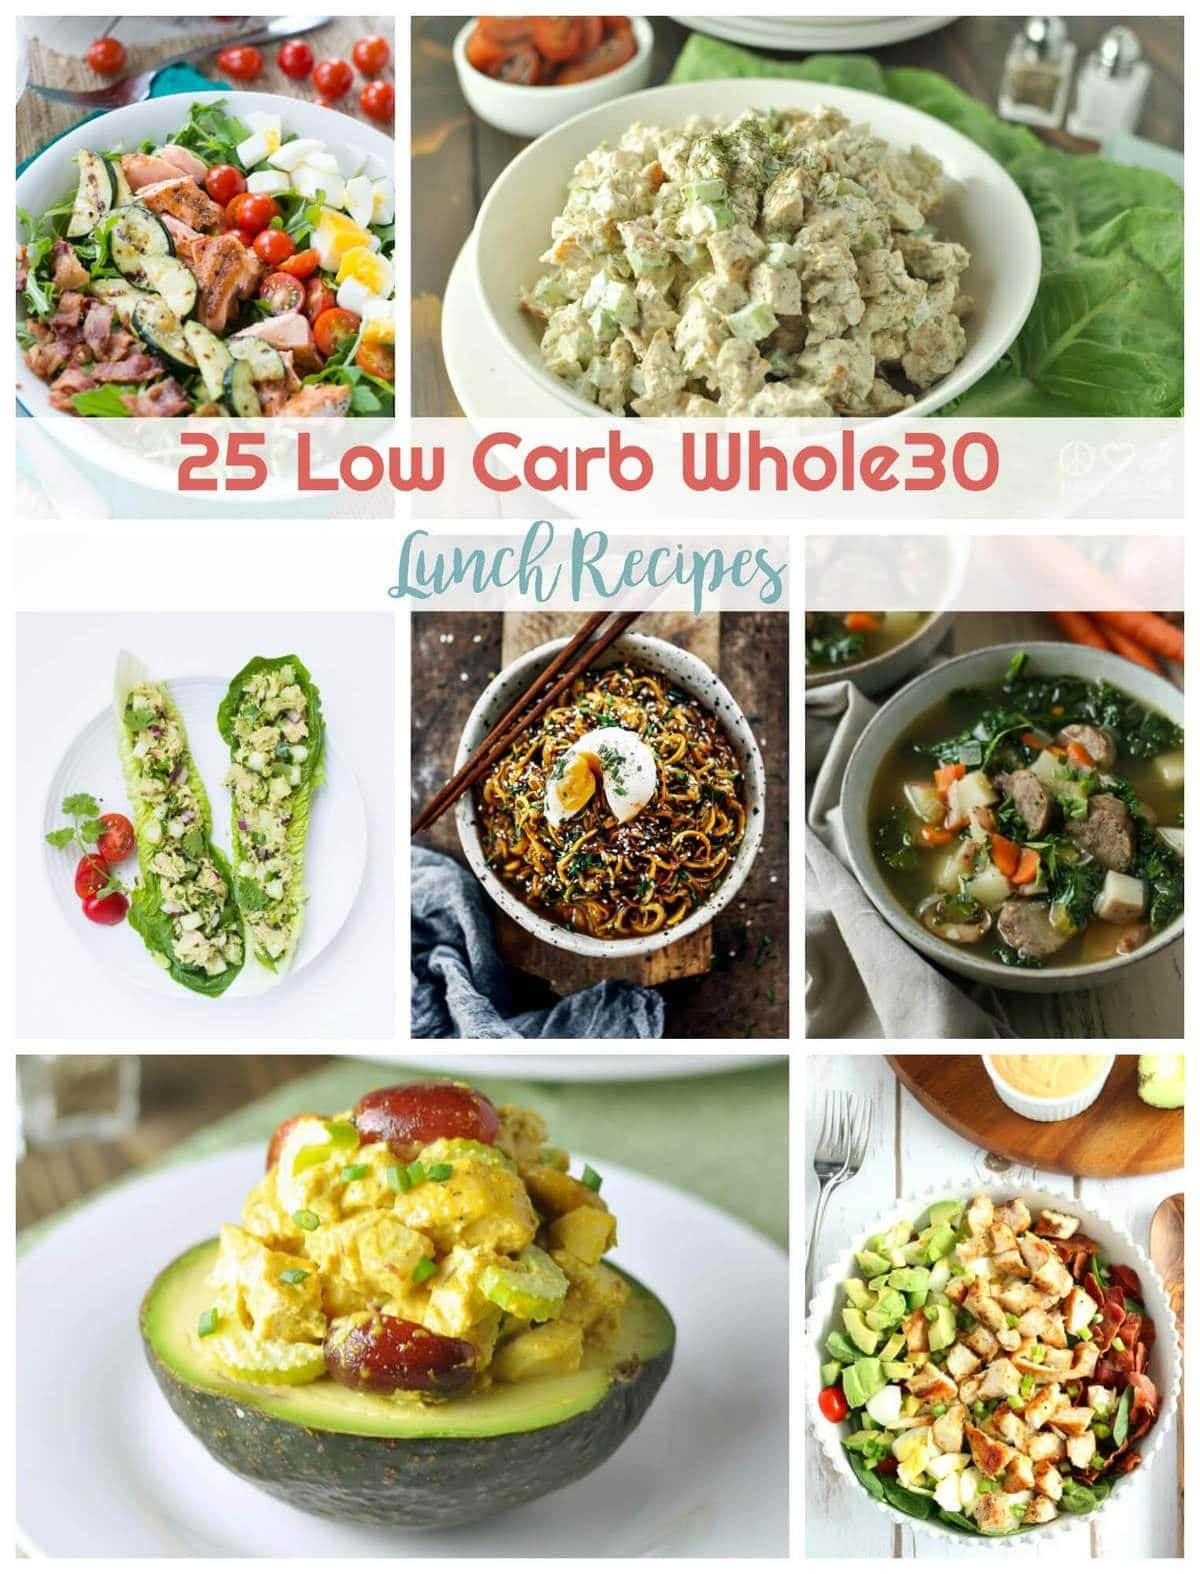 25 low carb whole30 lunch recipes peace love and low carb 25 low carb whole30 lunch recipes peace love and low carb forumfinder